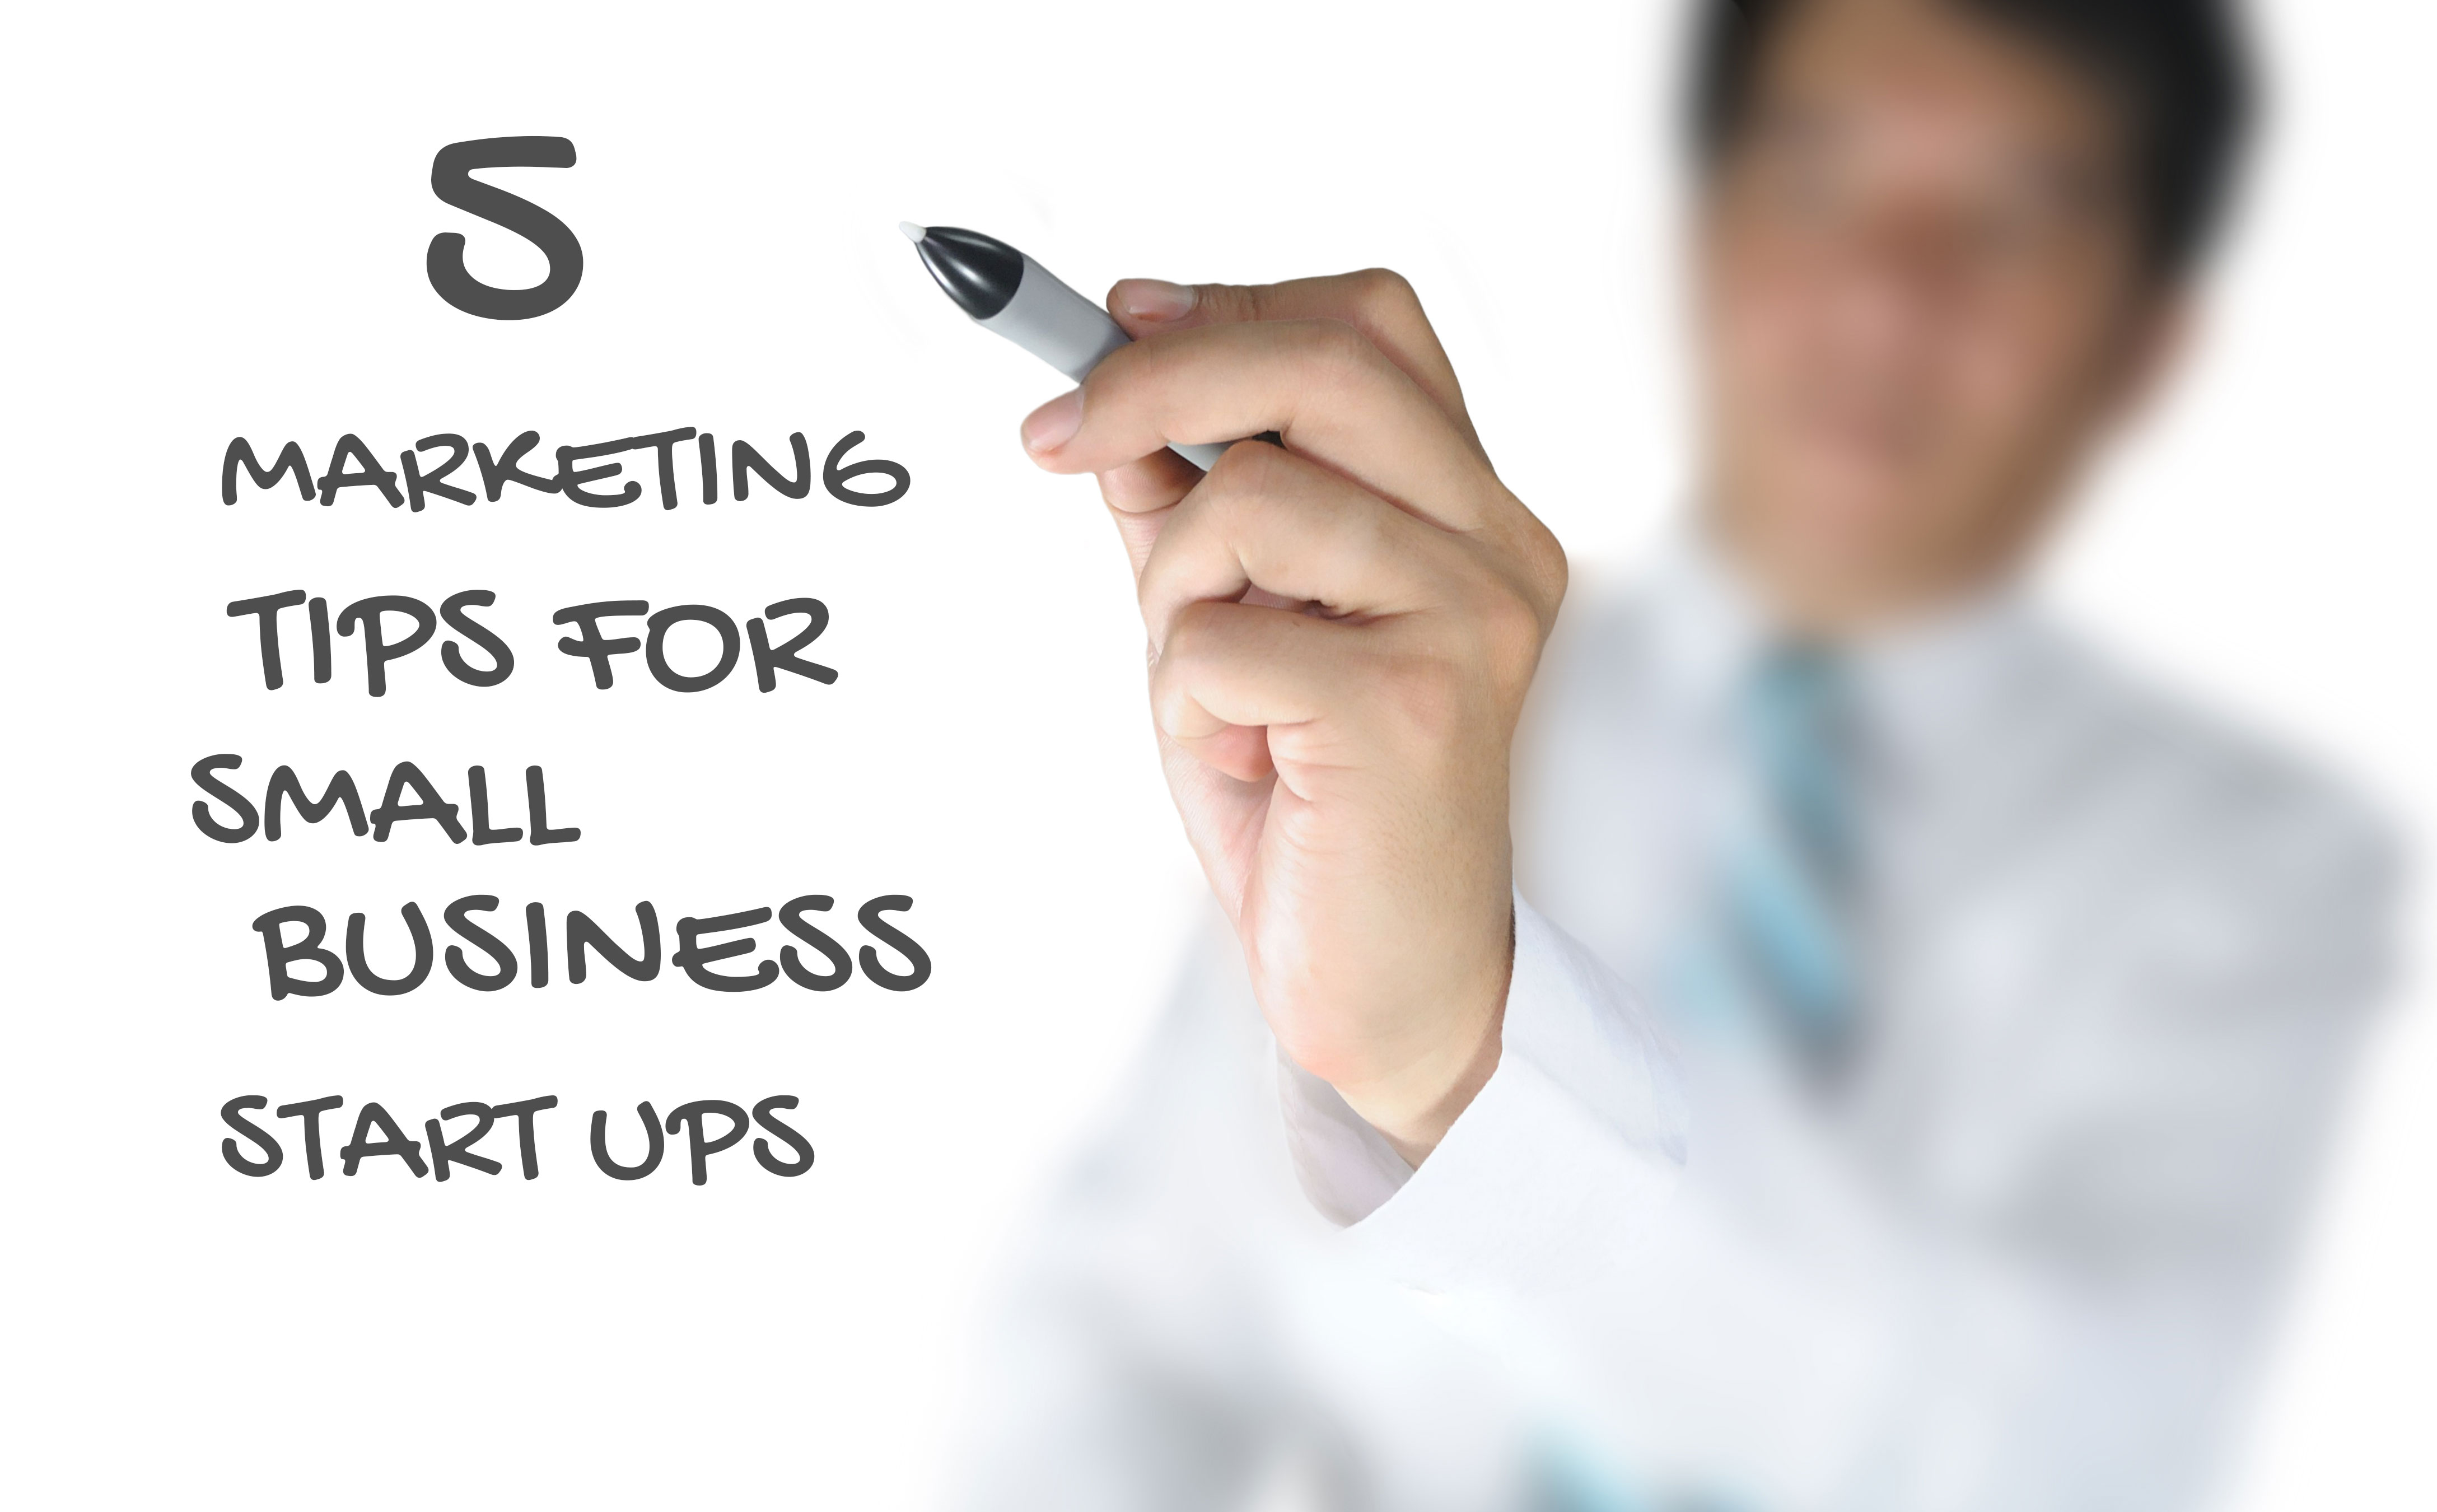 5 marketing tips for small business start-ups